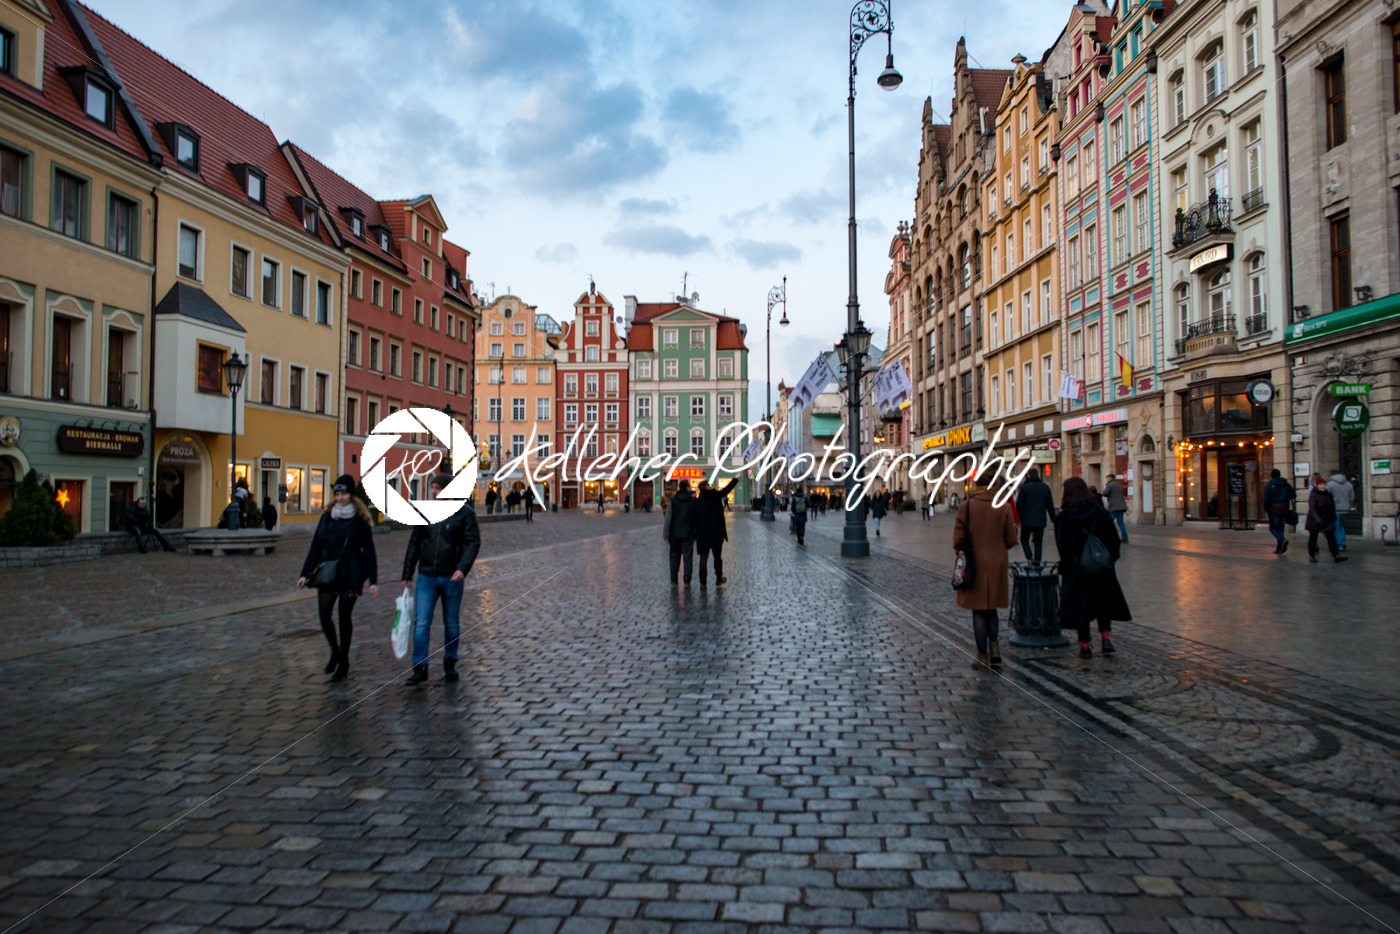 Wroclaw, Poland - March 8, 2018: Wroclaw Market Square in evening after  rain storm in historic capital of Silesia, Poland, Europe